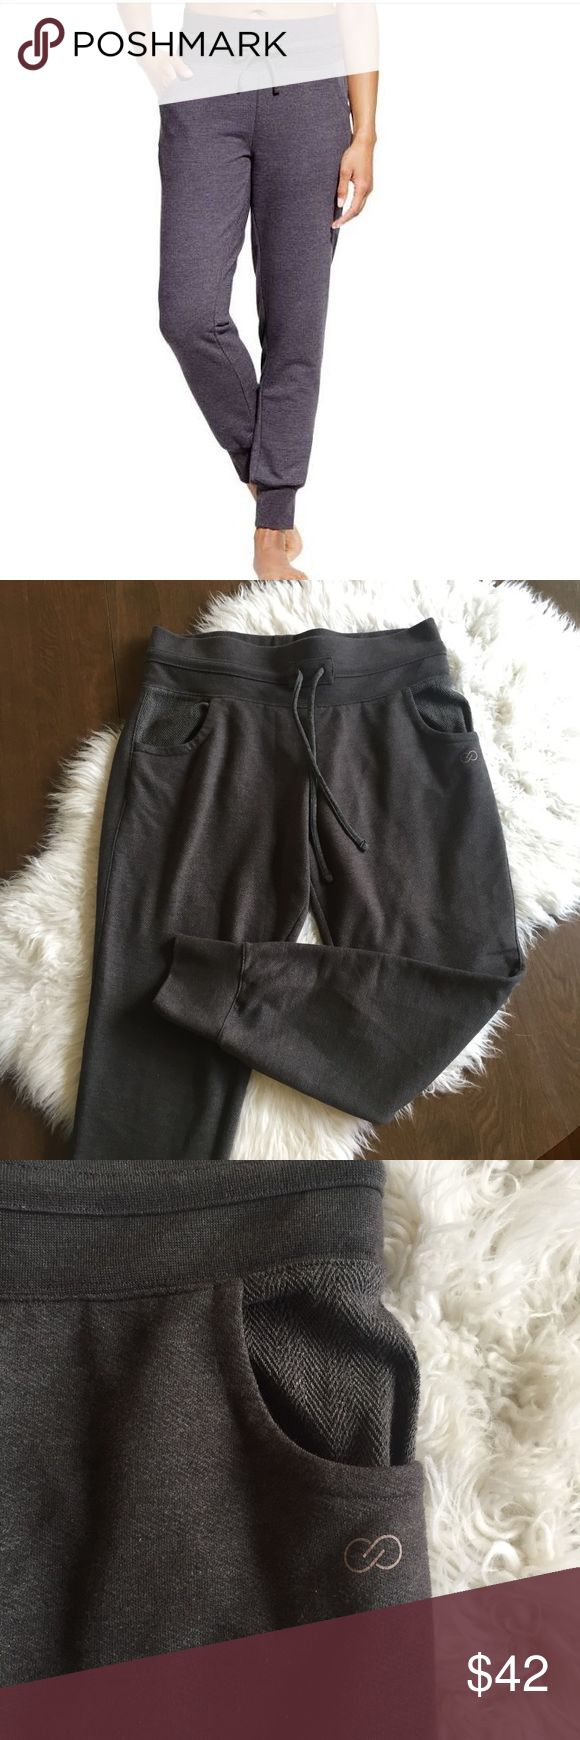 CALIA Carrie Underwood Effortless Sweatpants Grey with drawstring waist. Cuffs at hems. 💫 Smoke free home. Offers are welcome! No trades/holds/modeling requests, please. Bundle multiple items for a discount and only pay for shipping once! CALIA by Carrie Underwood Pants Track Pants & Joggers